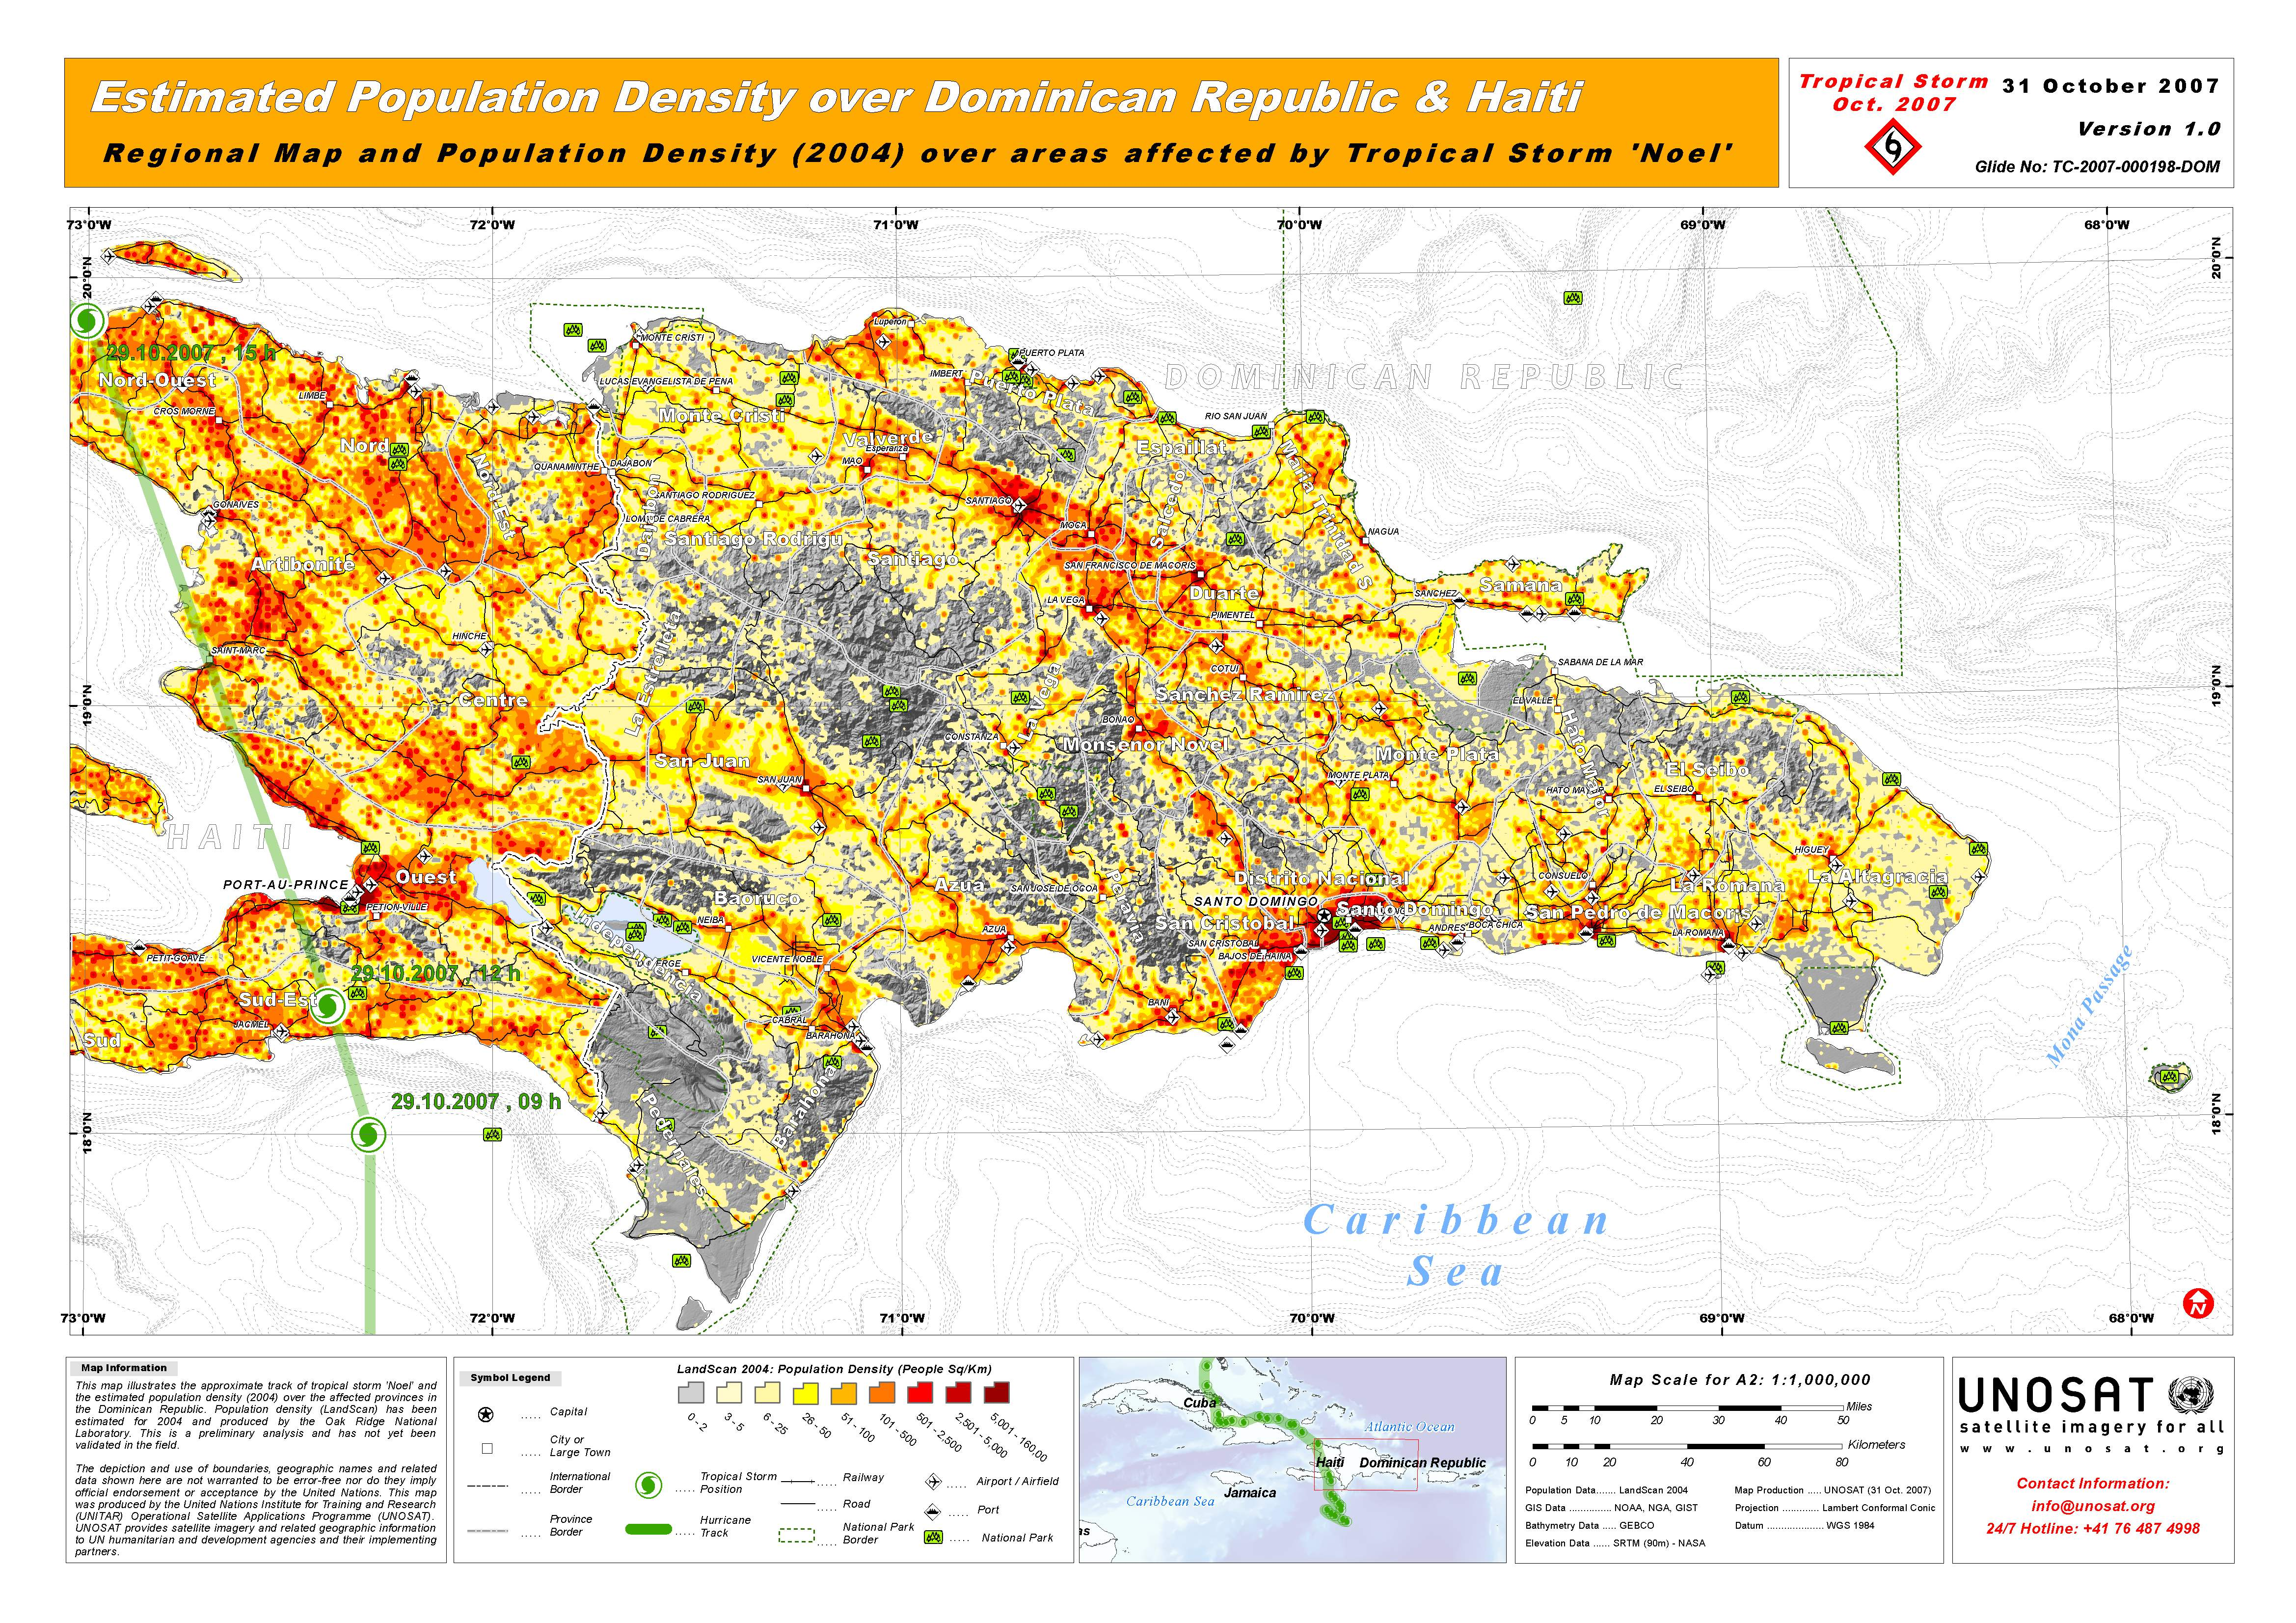 Estimated population density over dominican republic haiti unitar pdf 26mb gumiabroncs Choice Image